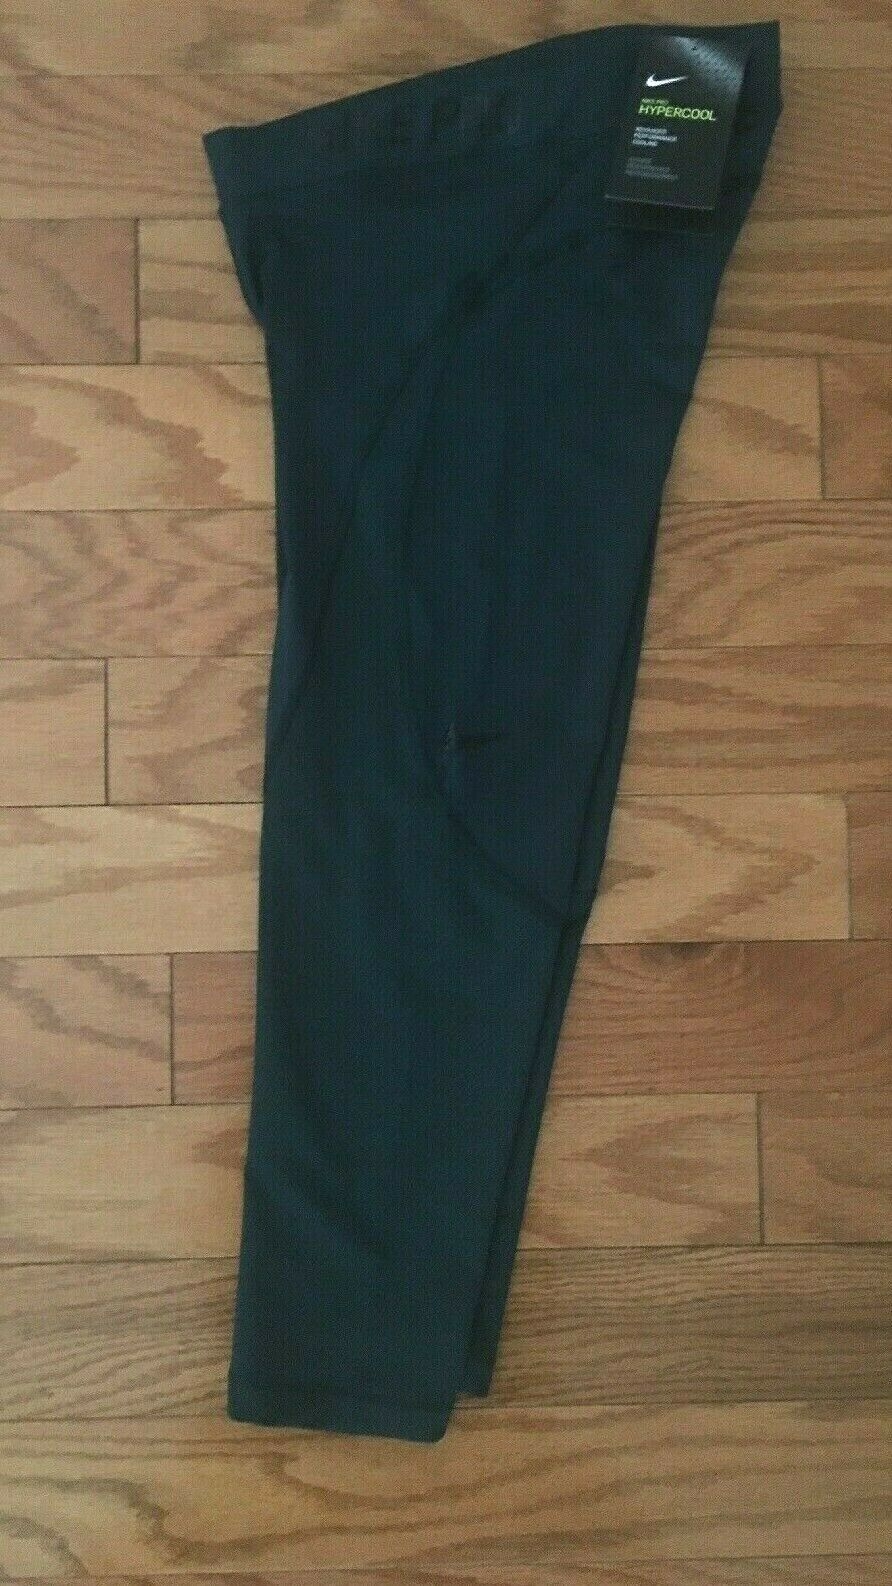 NEW Women's NIKE PRO Compression Training Green Tights Capri 889651 372 XS